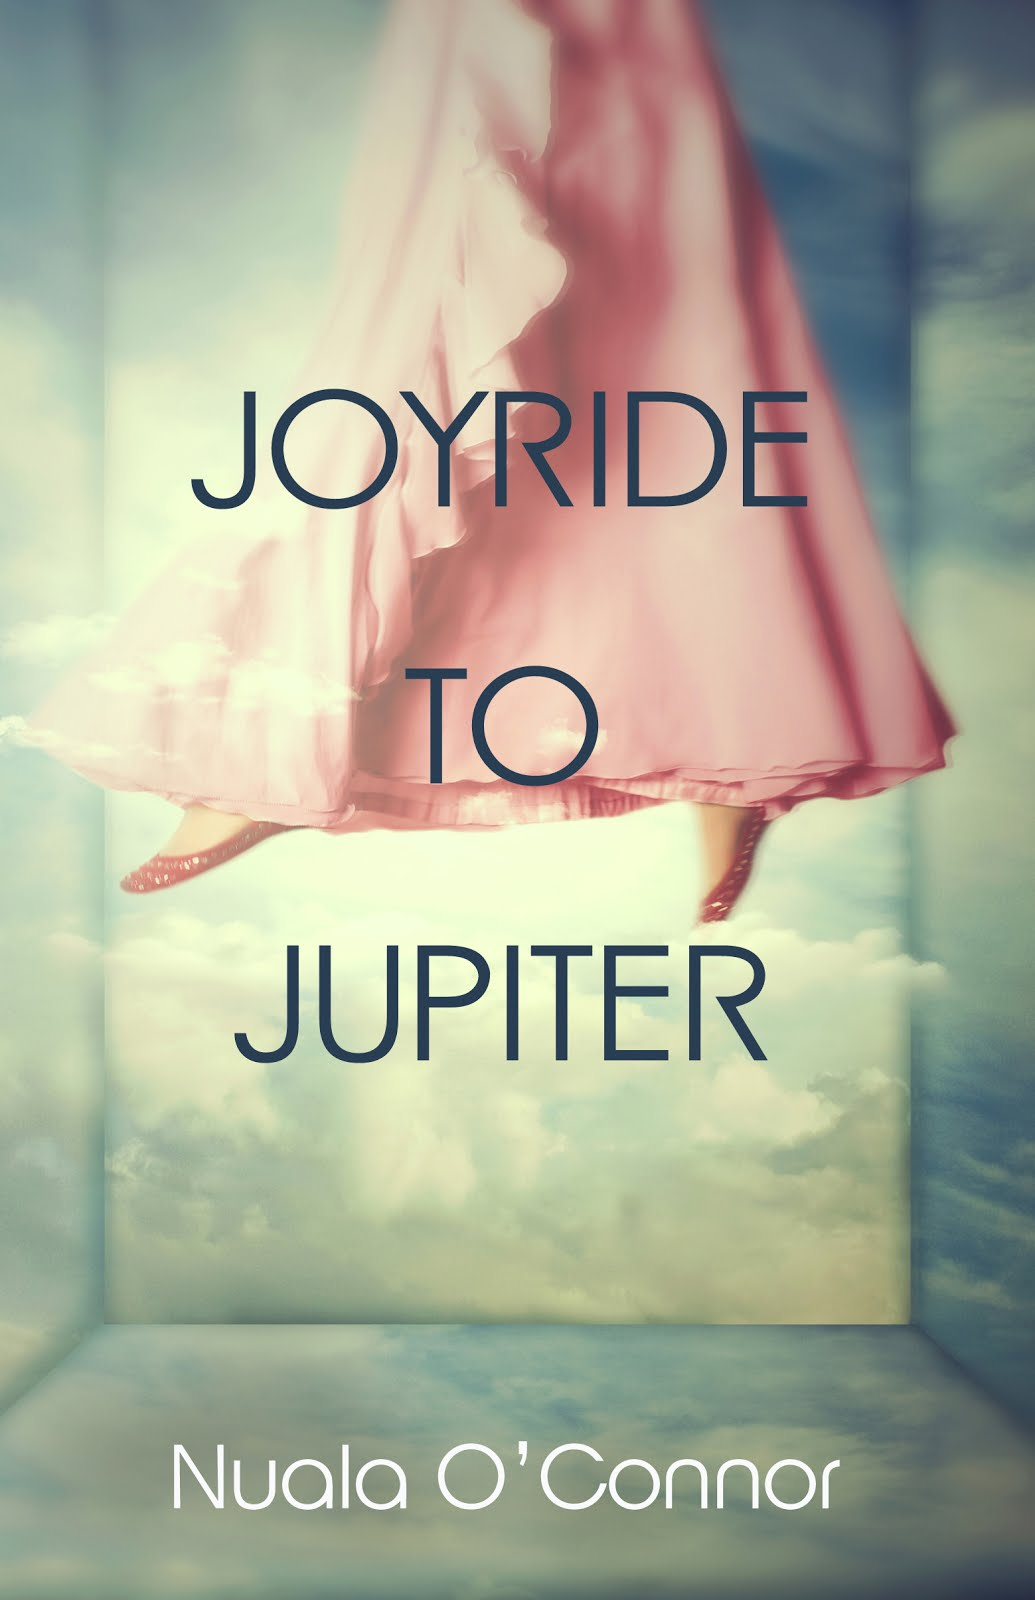 JOYRIDE TO JUPITER